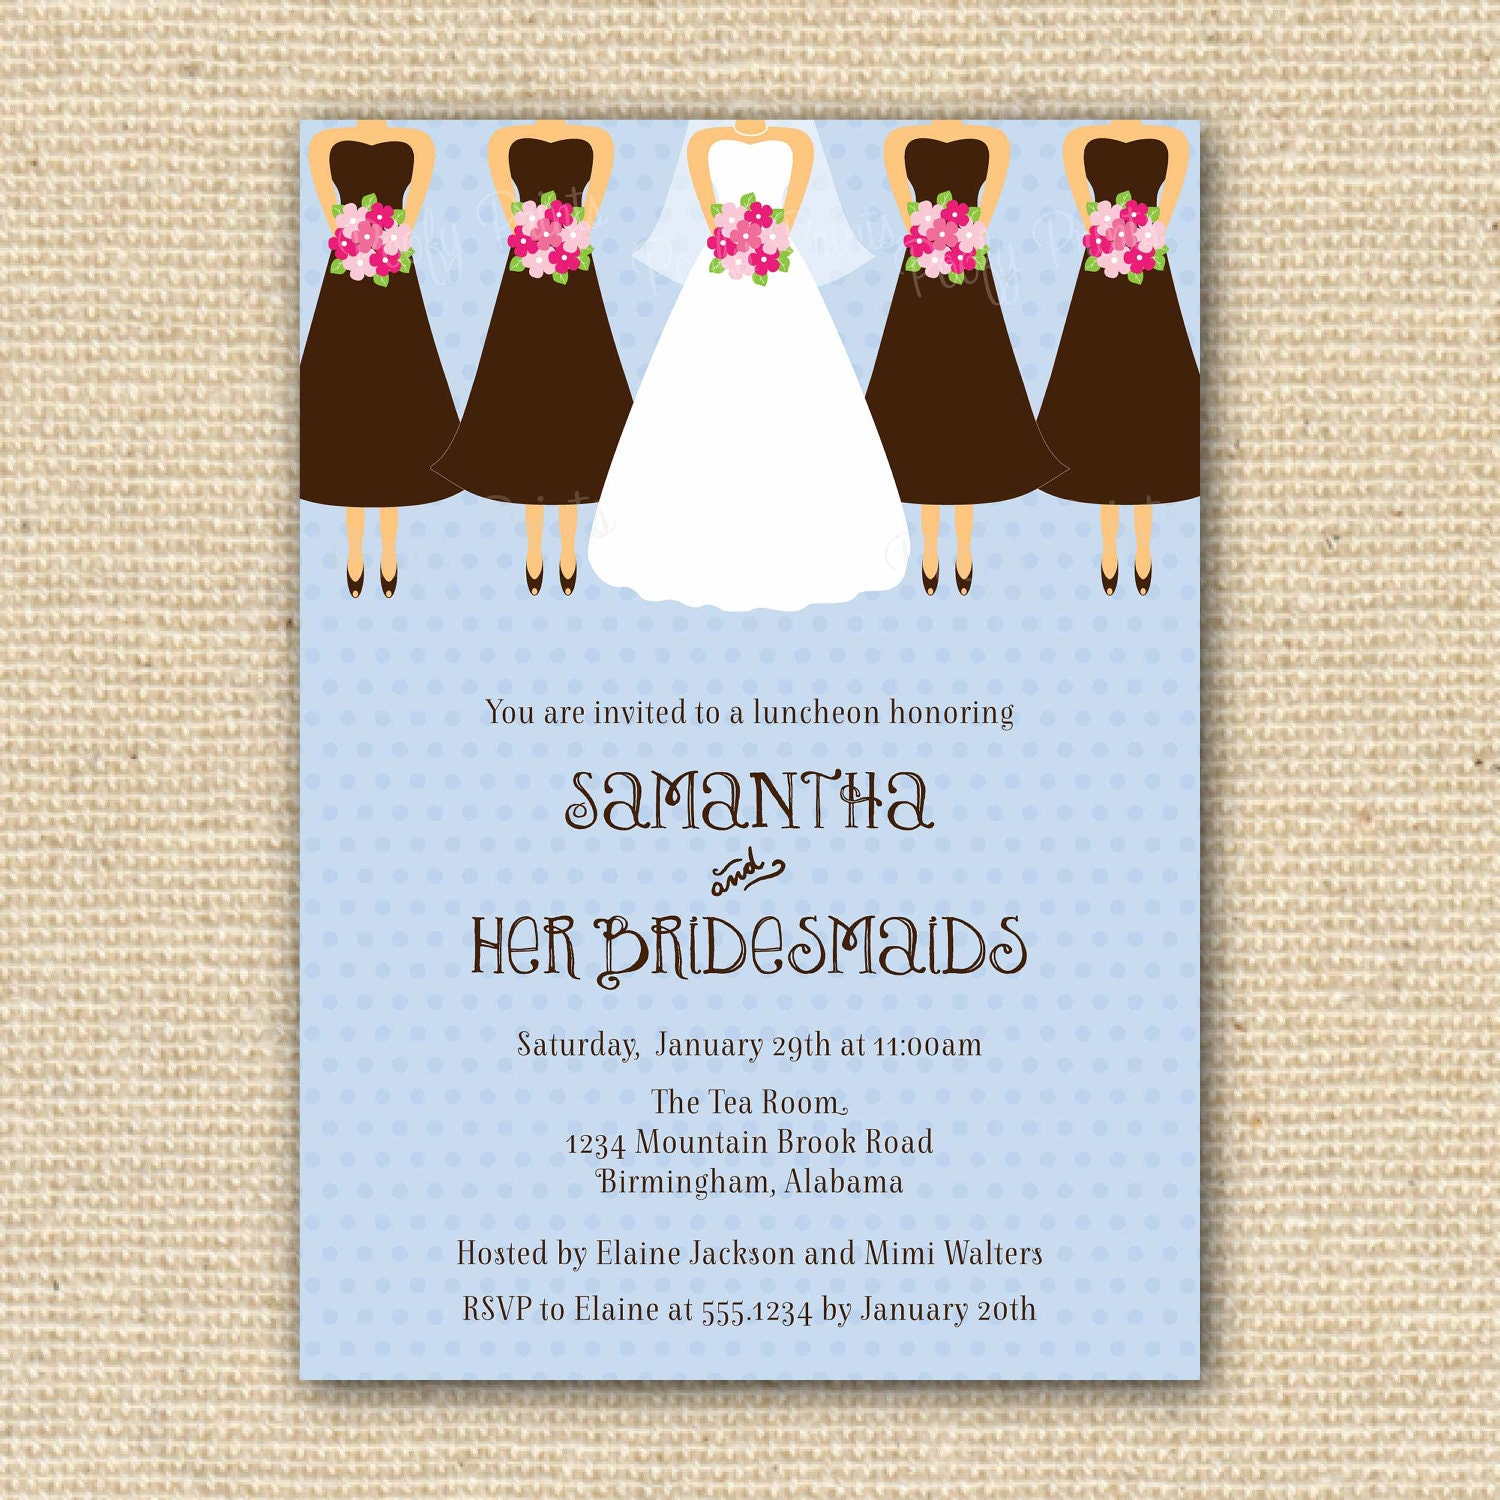 Lunch Invitation Wording for nice invitations design